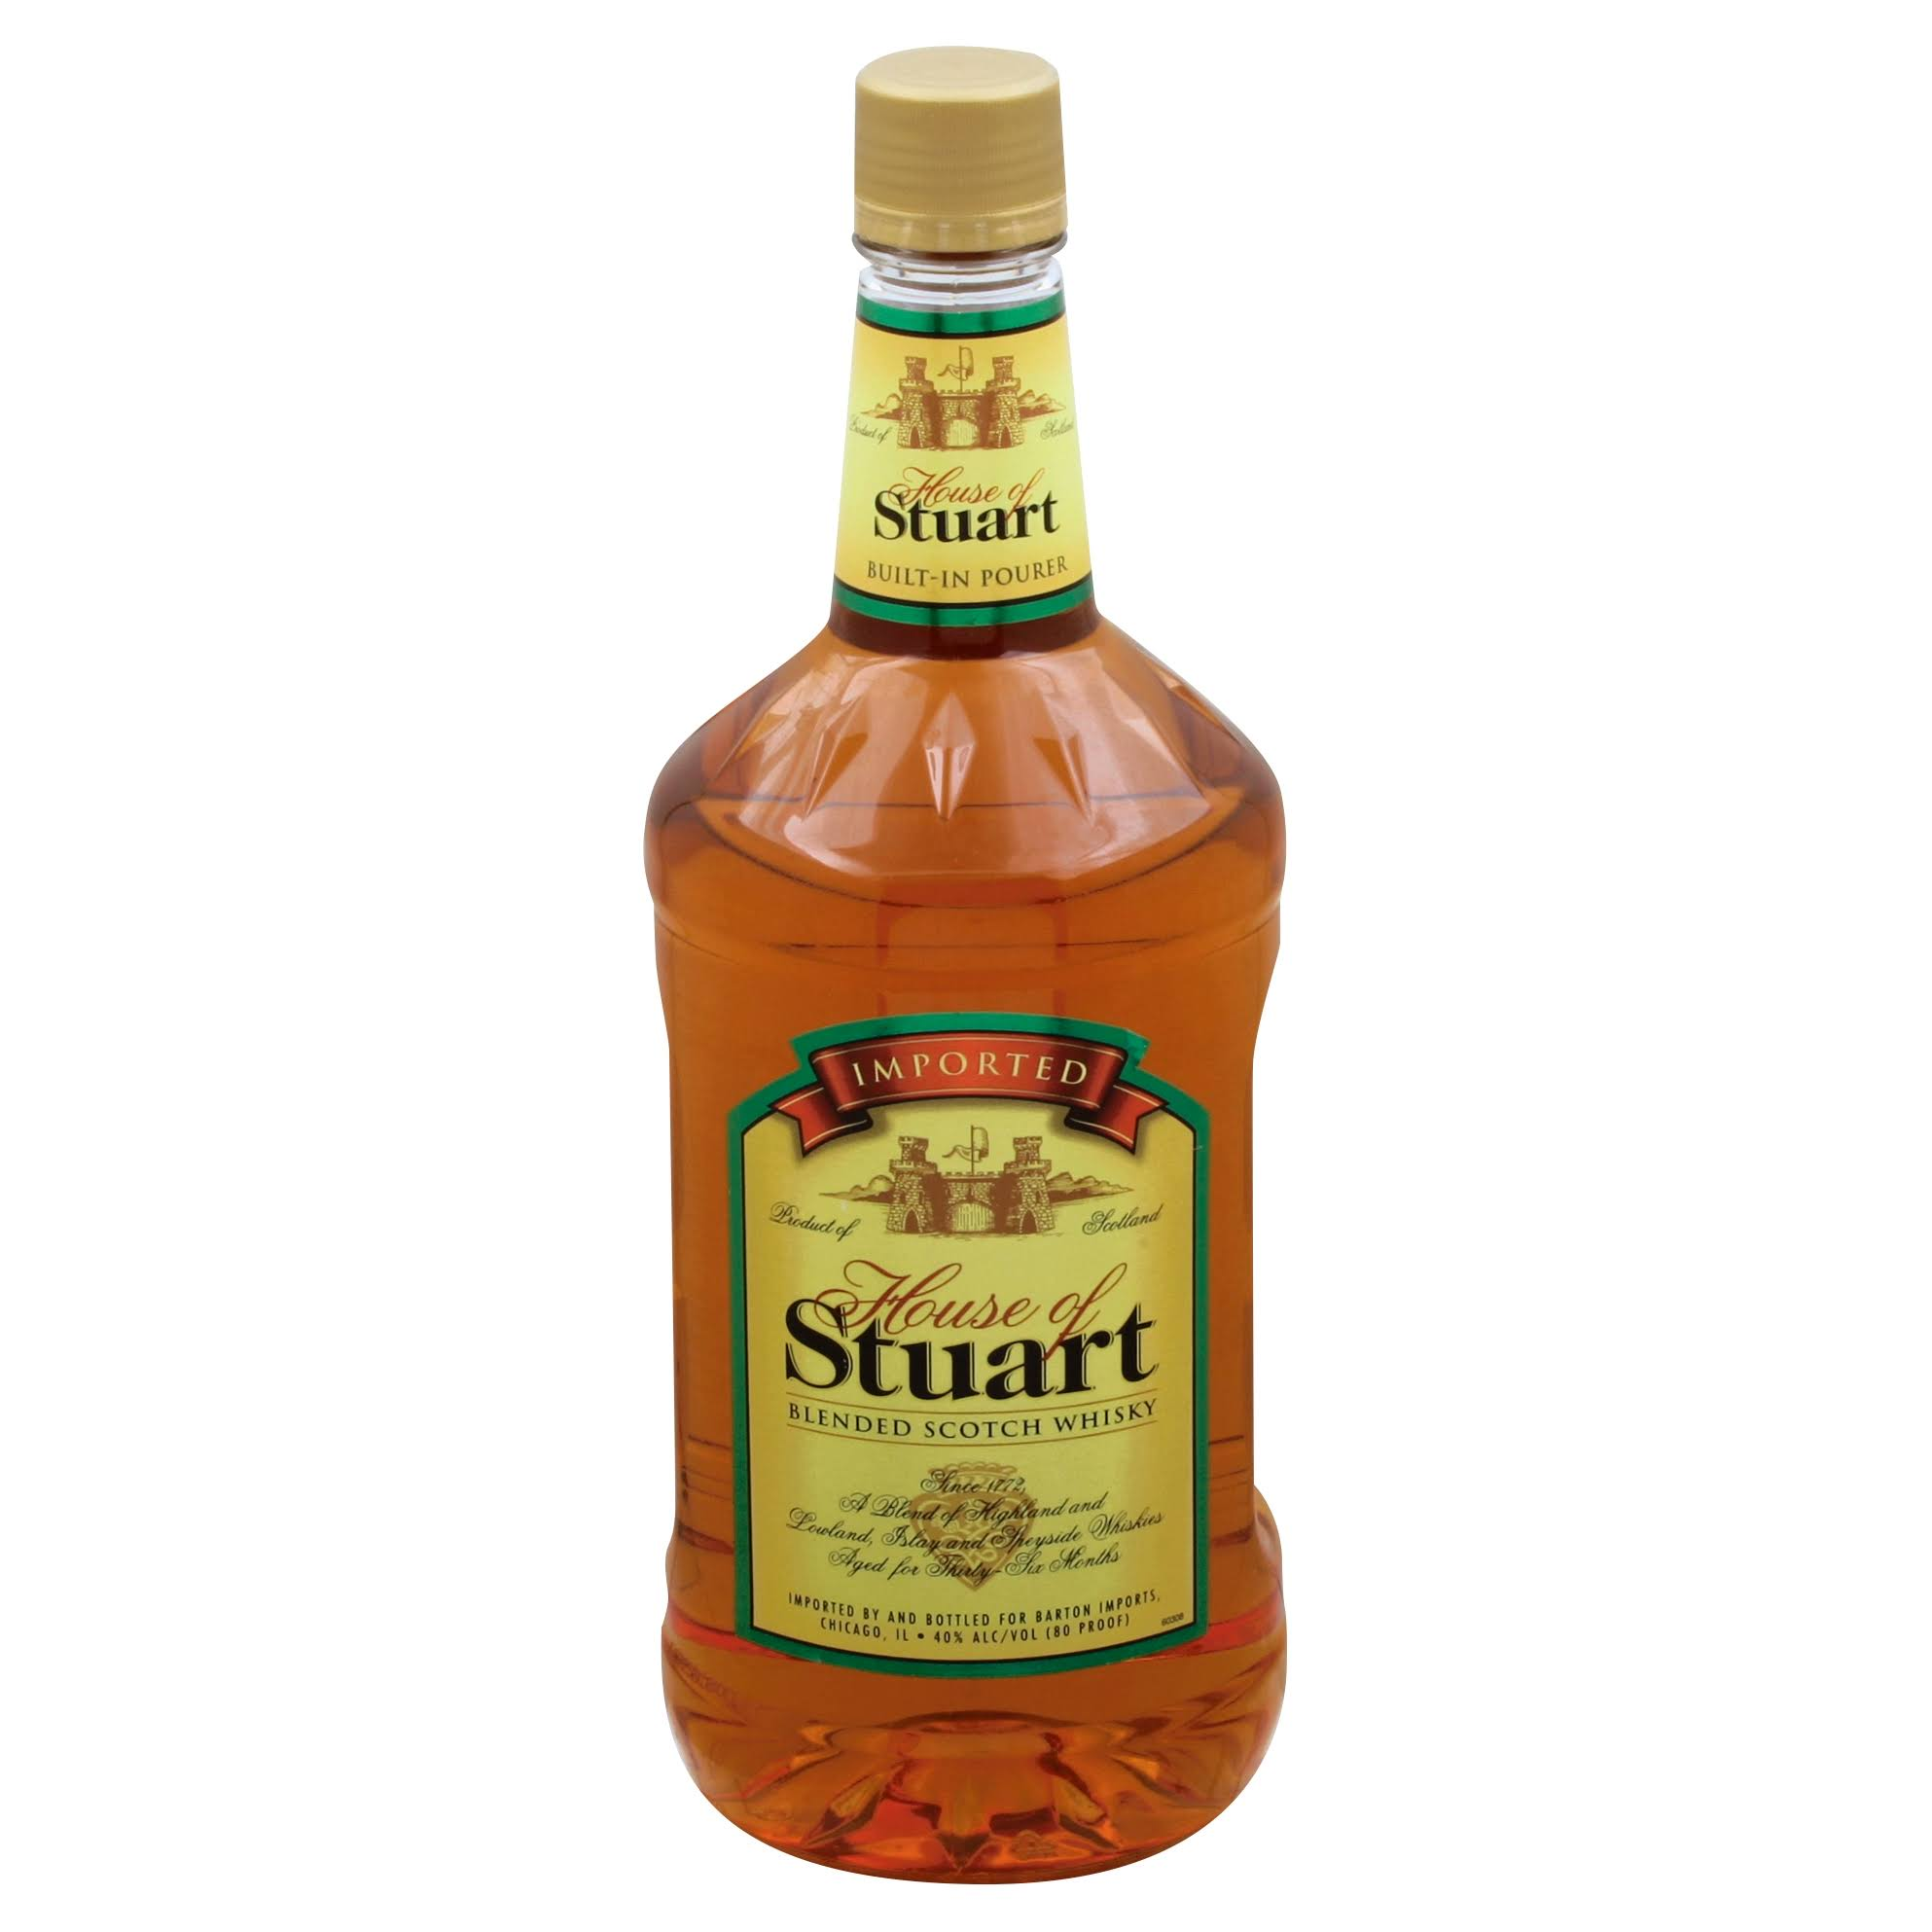 House of Stuart Blended Scotch Whisky